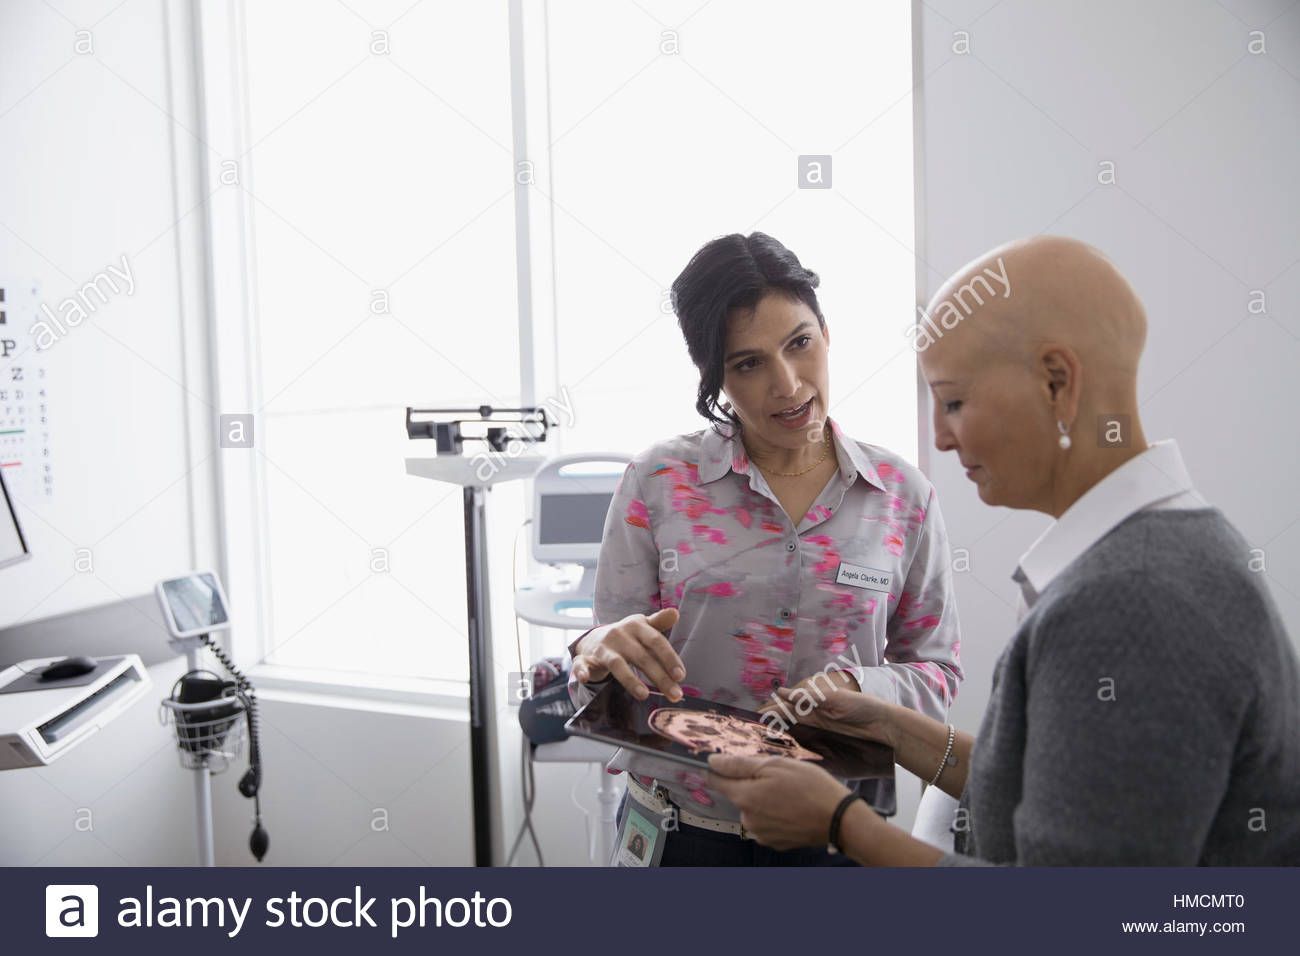 Female doctor showing digital brain scan on digital tablet to bald cancer patient in clinic examination room - Stock Image